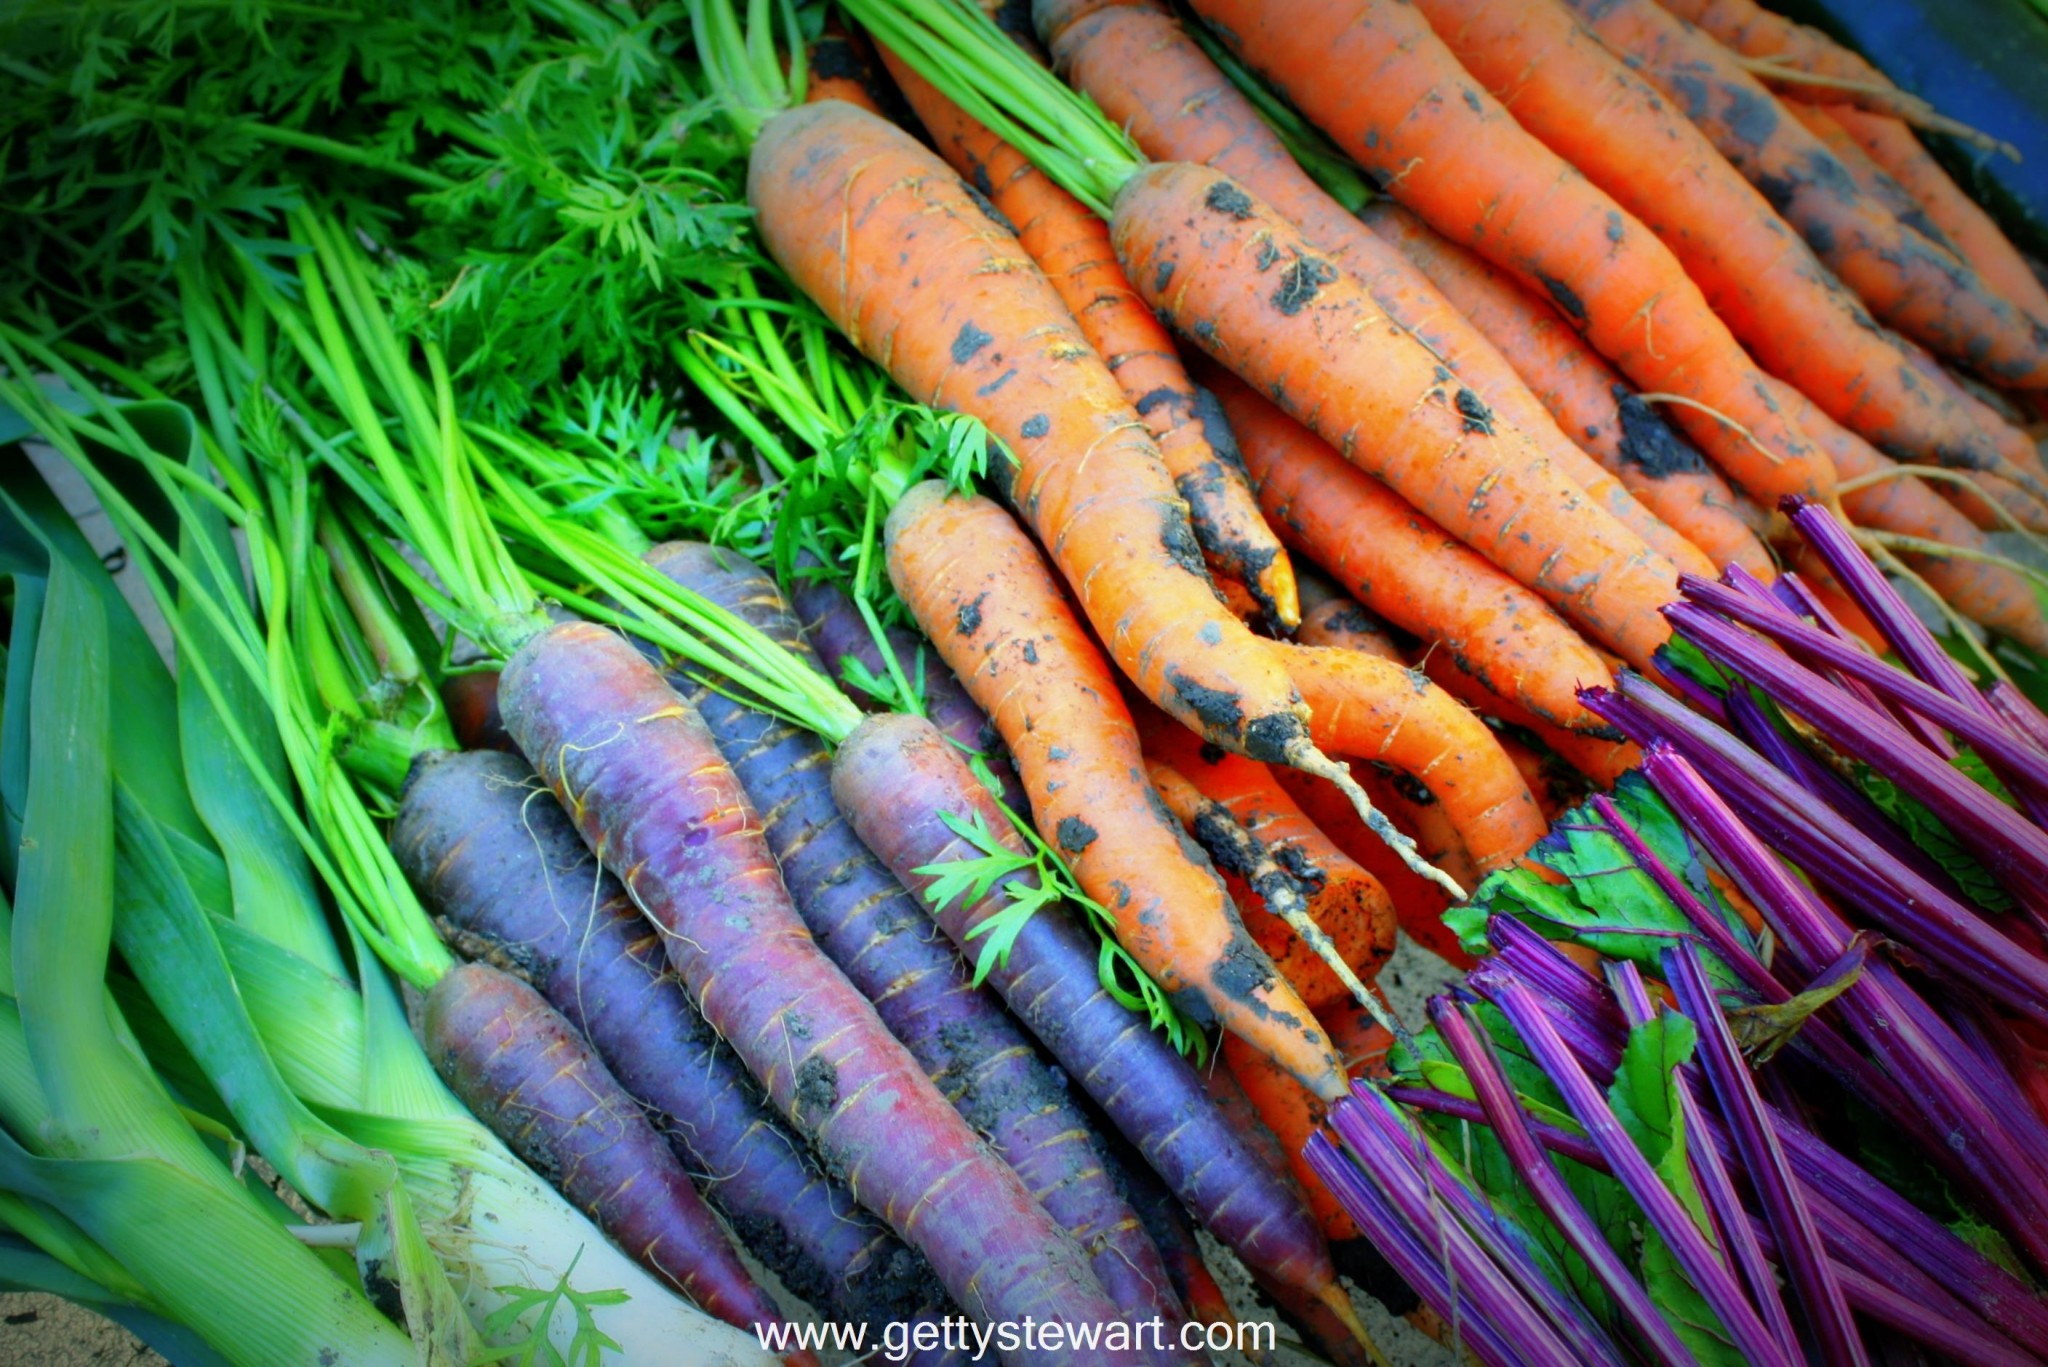 Carrot. Varieties for food, storage and processing 81